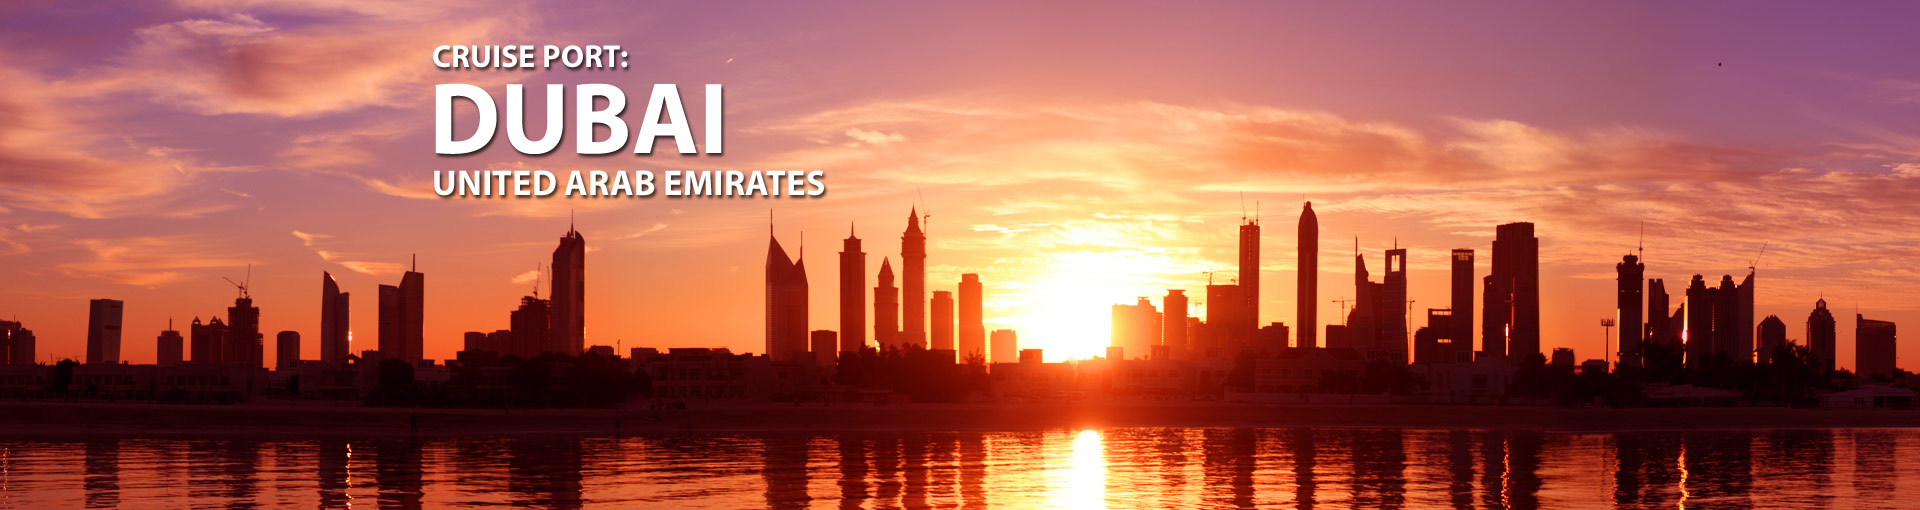 Cruises from Dubai, United Arab Emirates